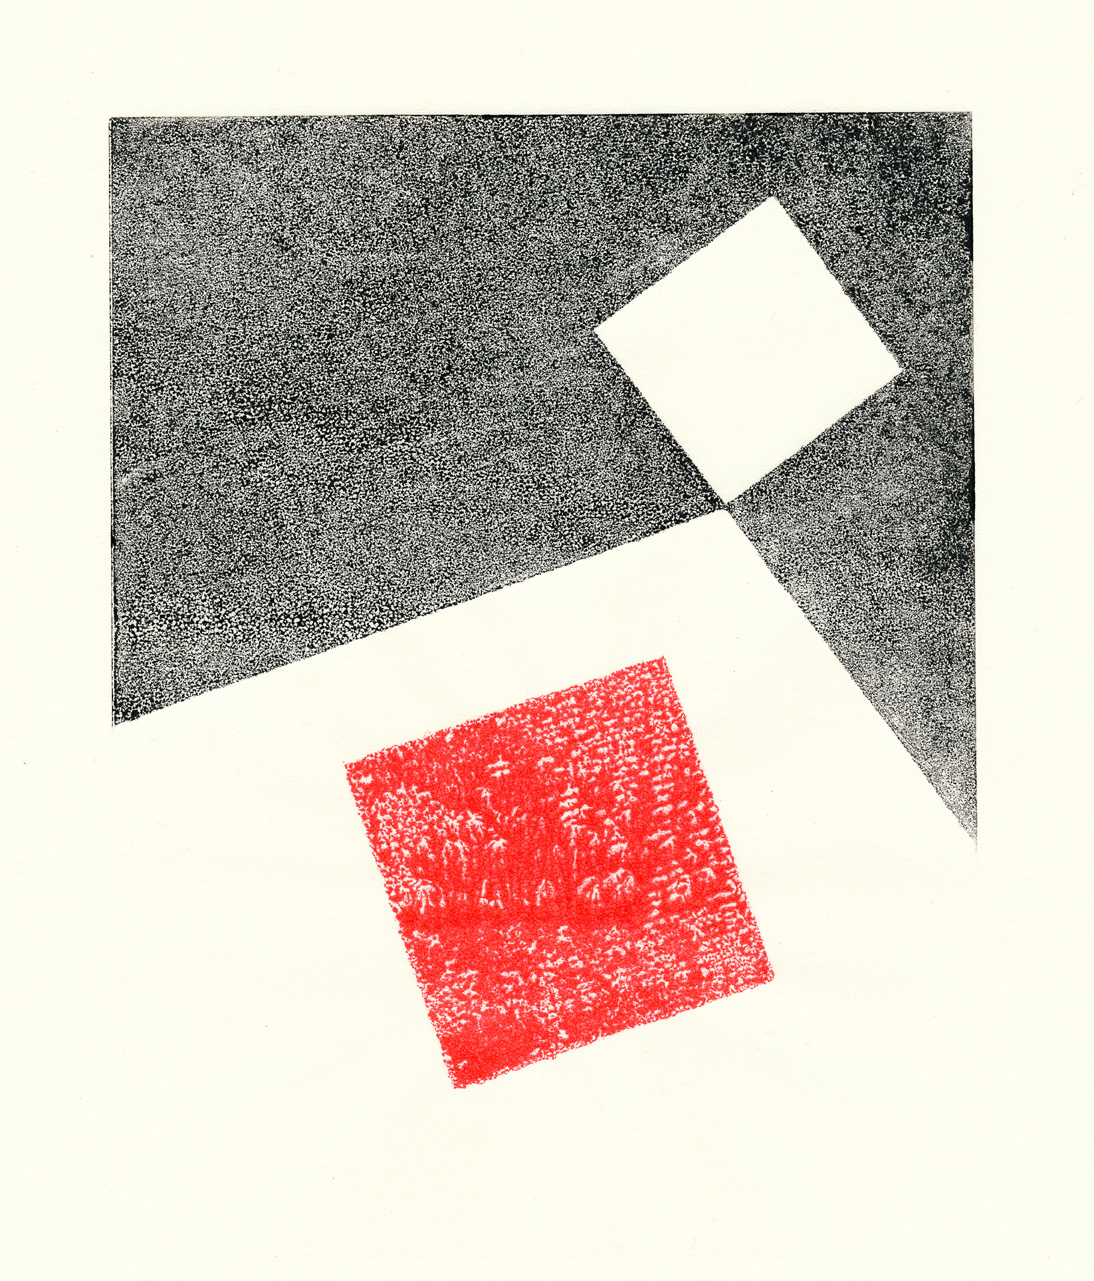 Home, Three Monoprints I, Mike Tedder